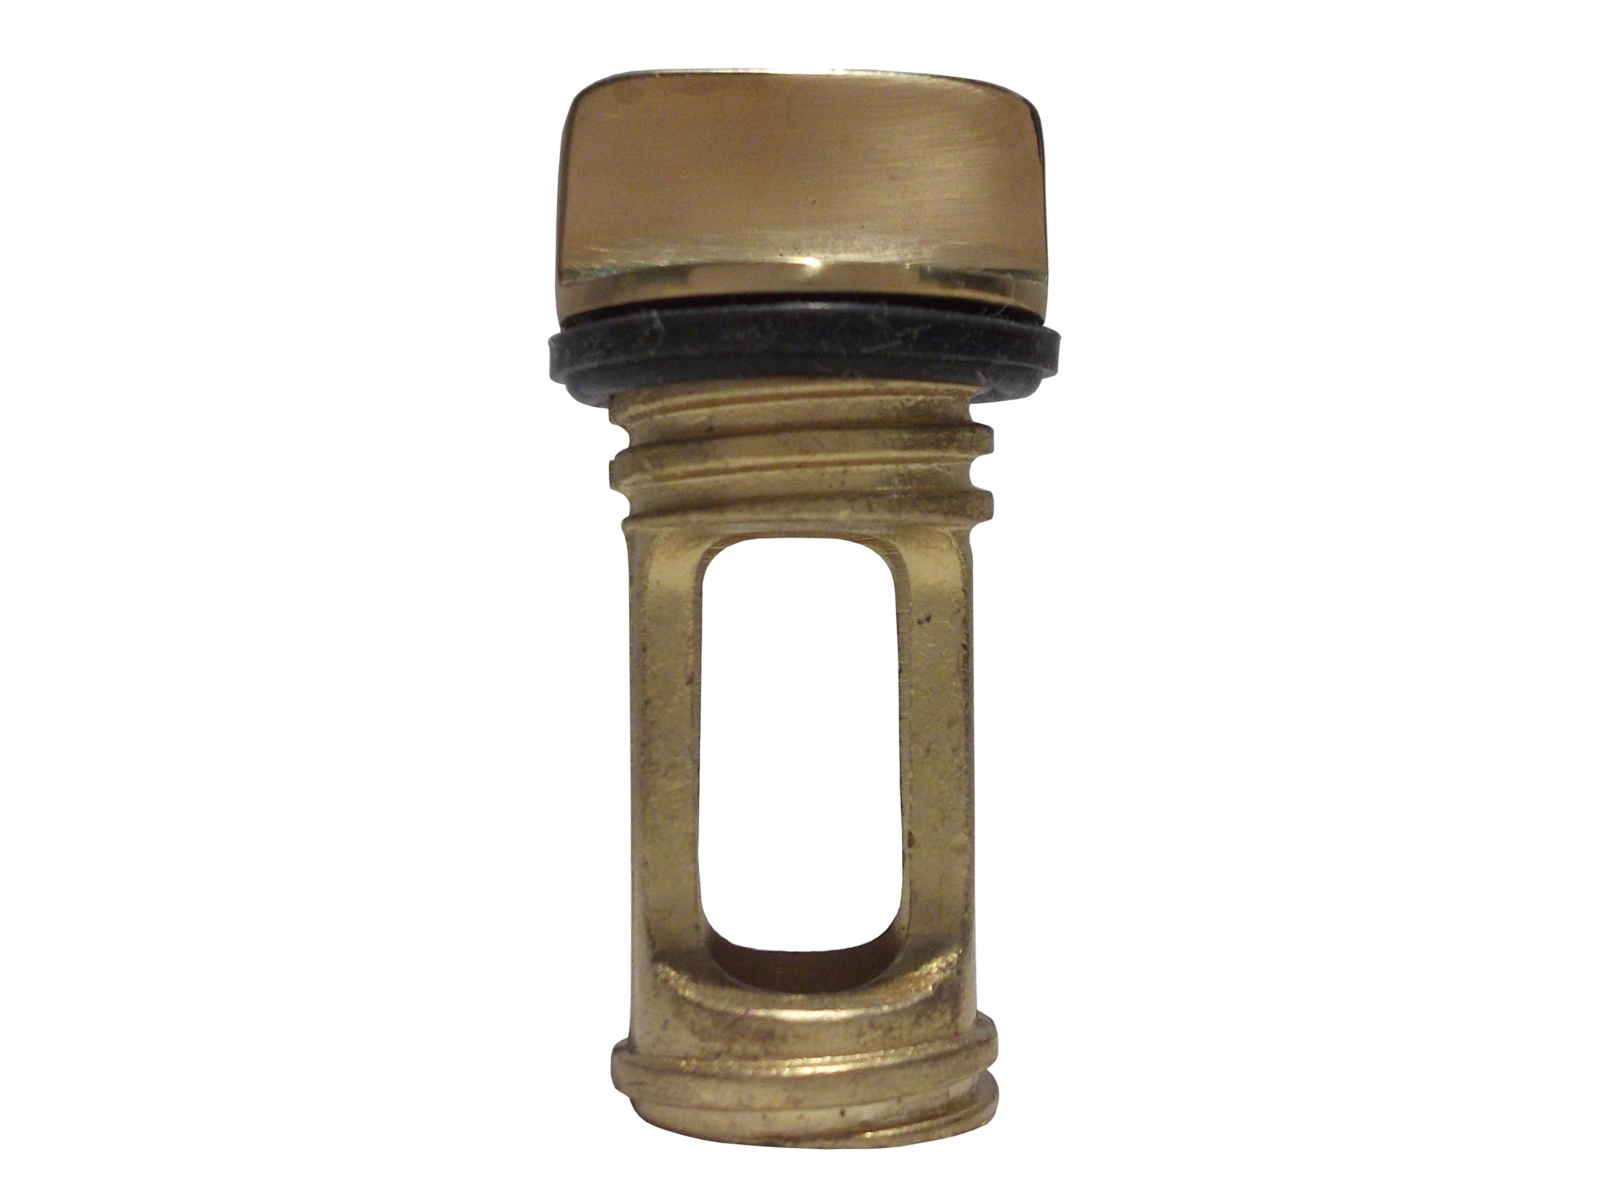 M7 16 99105280 1 Southco 1 2 Quot Garboard Drain Plug Brass